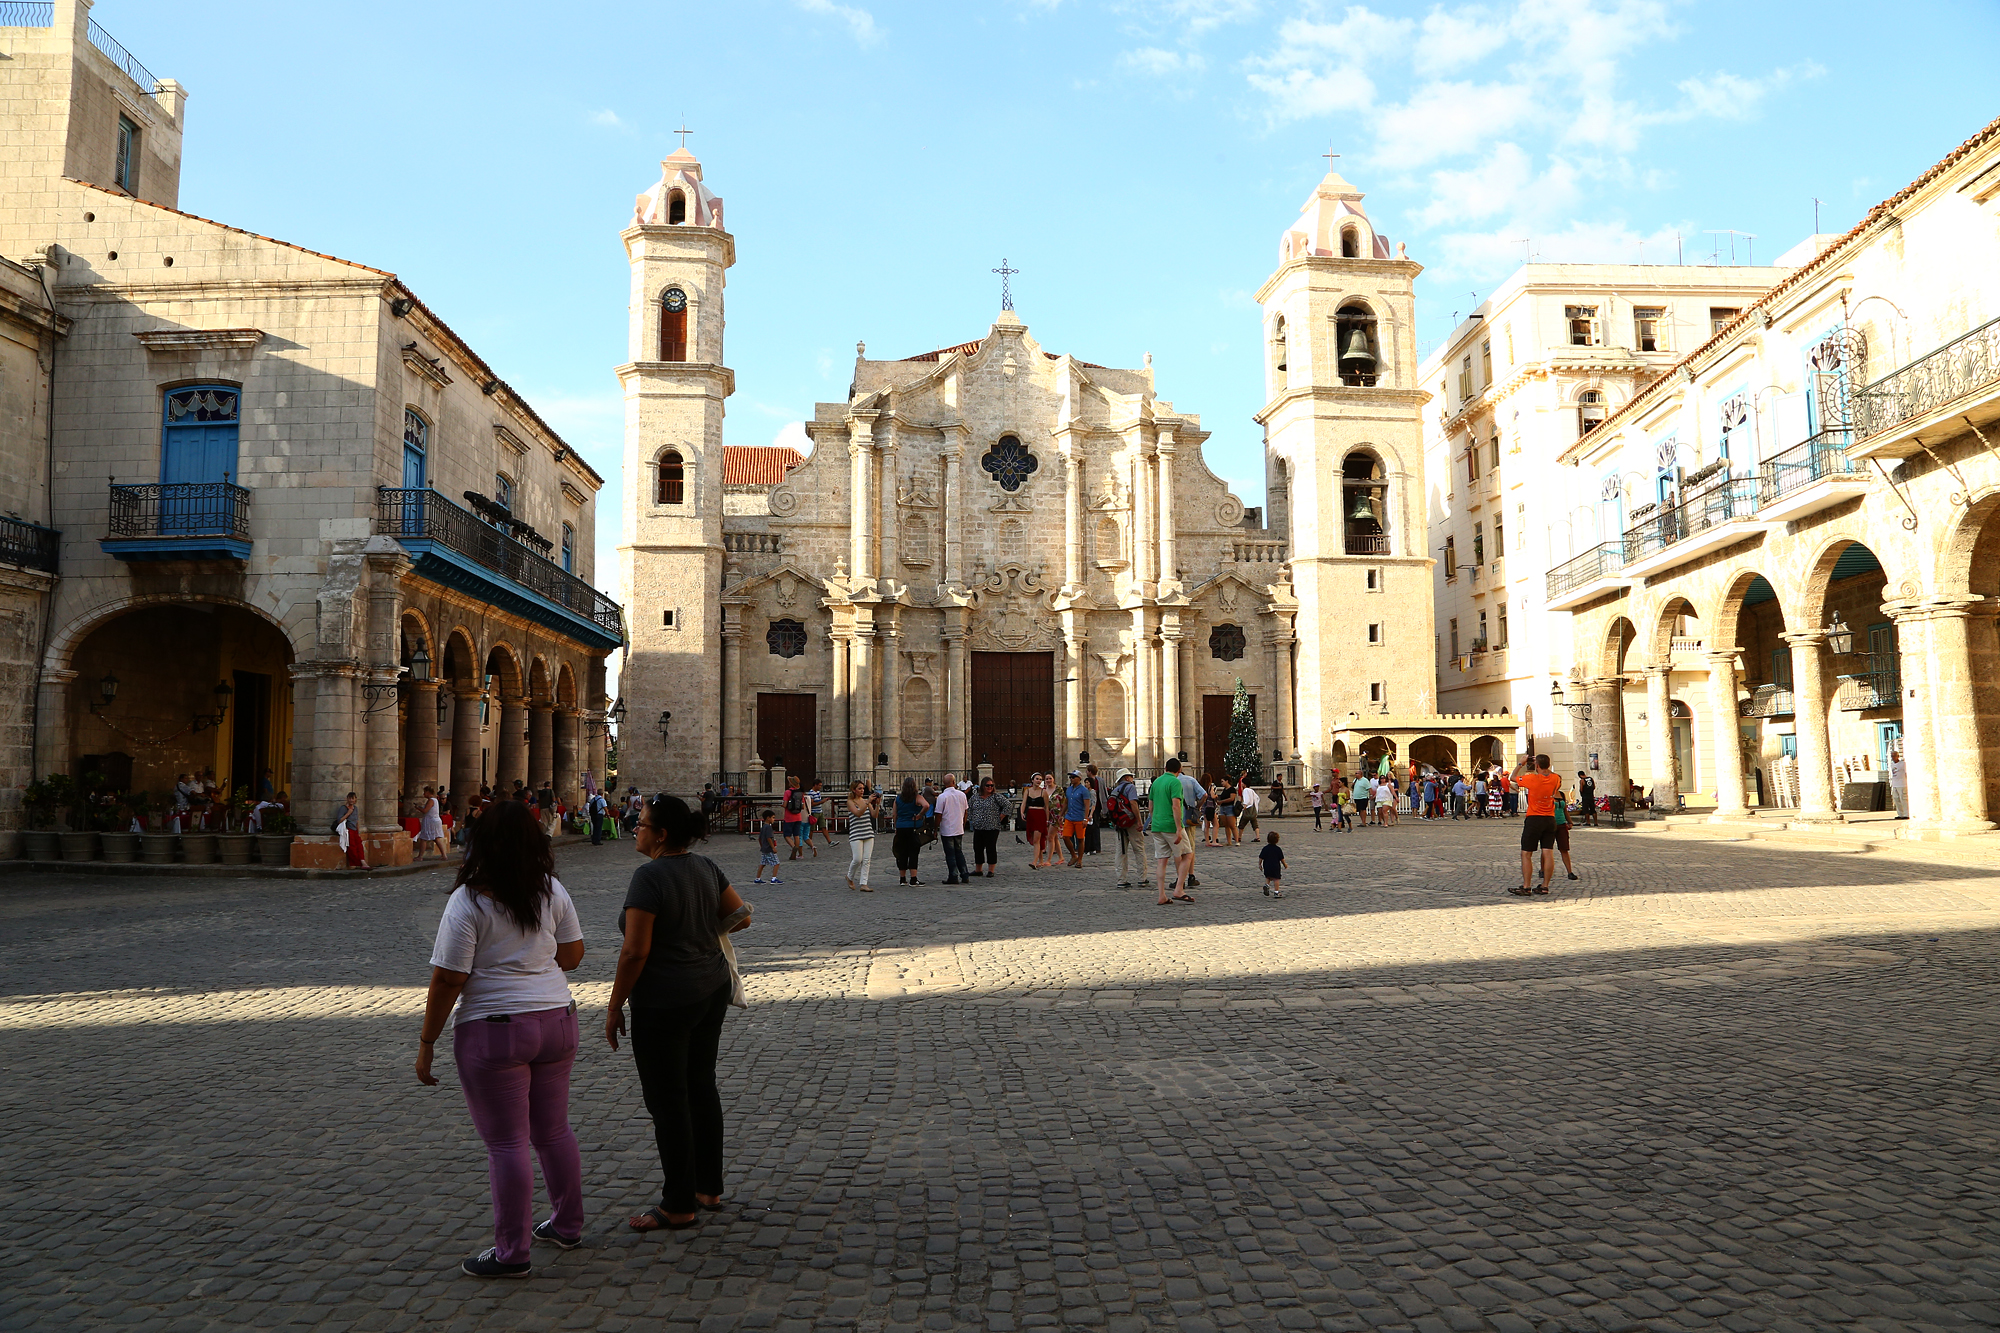 Plaza de la Catedral in Old Havana